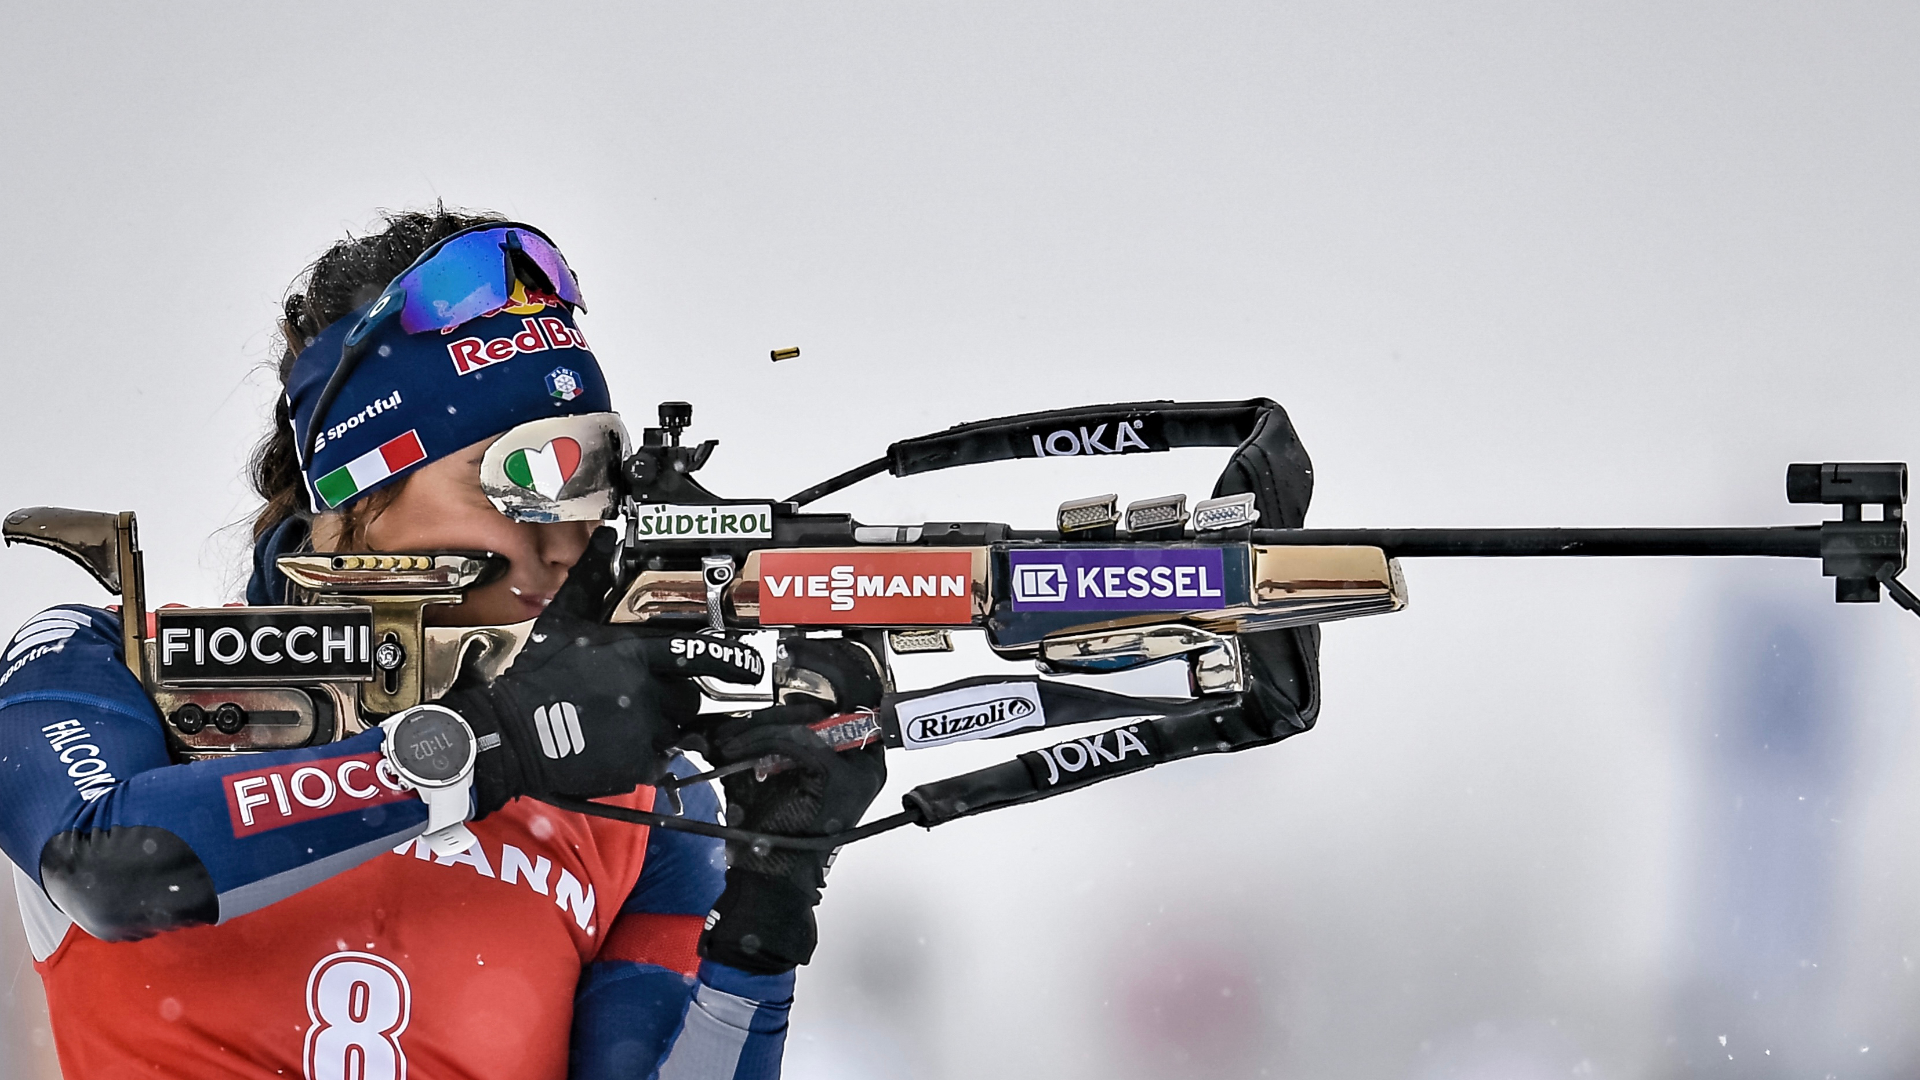 BIATHLON. SILVER AND GOLD MEDALS IN OBERHOF